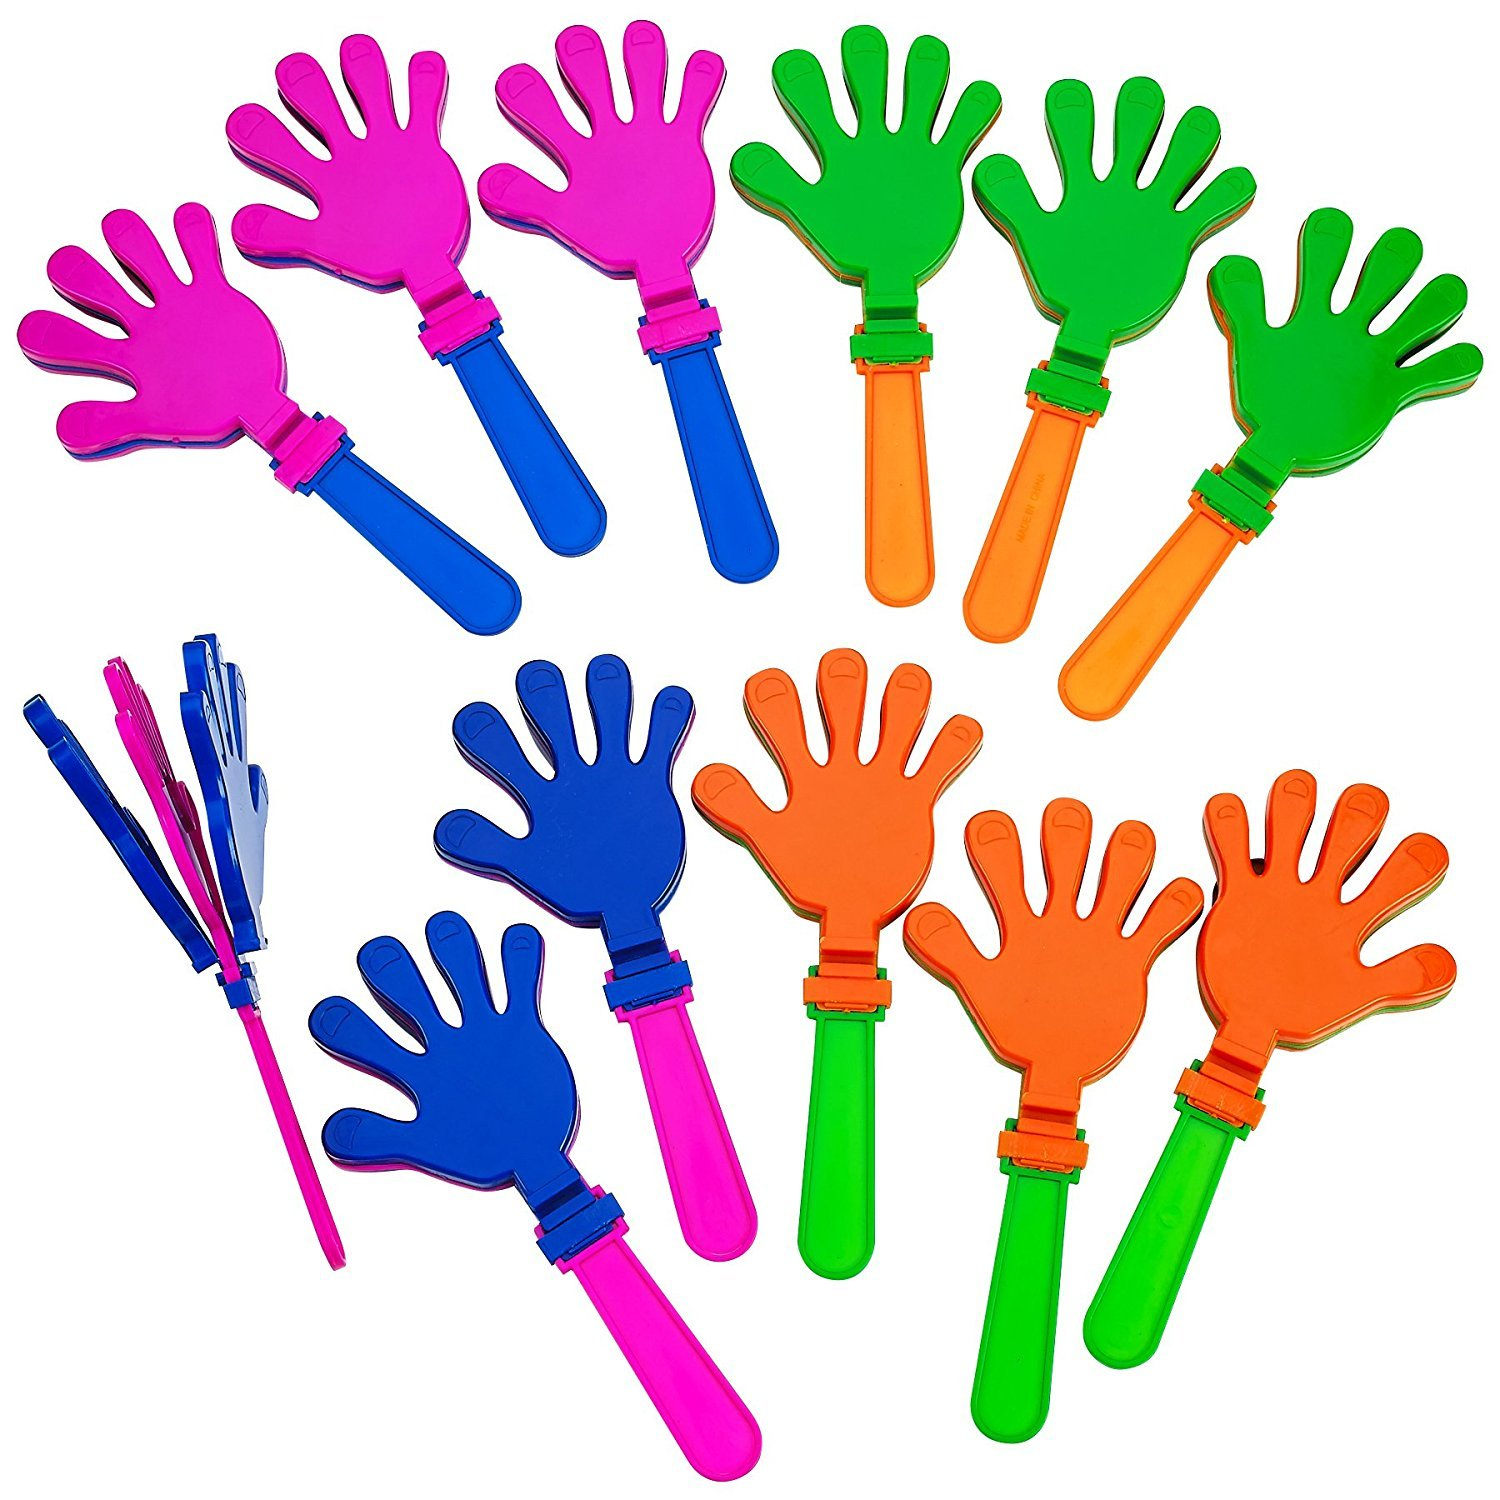 Plastic Hand Clappers - 12 Pack Assorted Colors – Party Favors - Toy For Kids, Easter Hunt, Cinco de mayo – Noise Makers – By Katzco